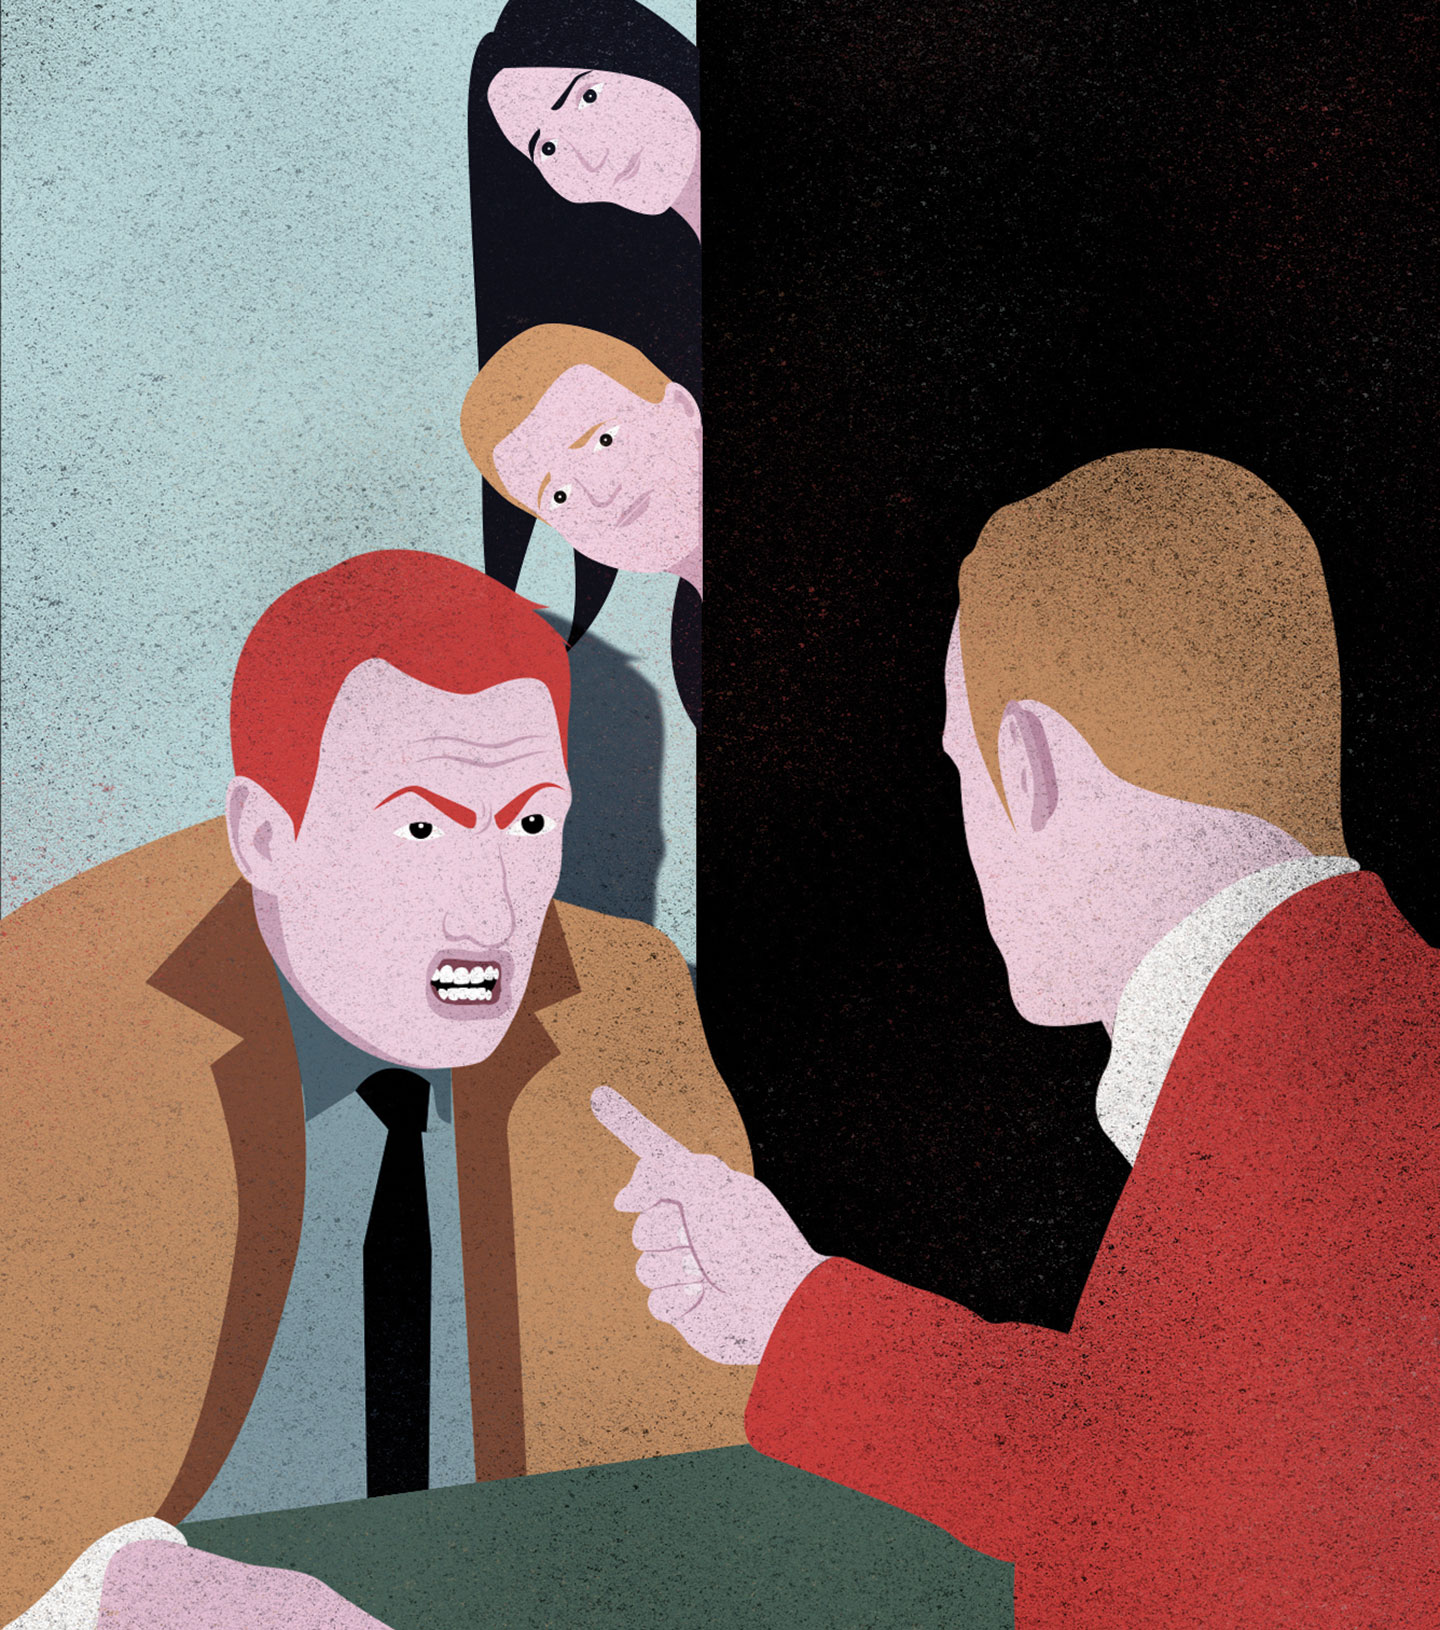 When a Manager Starts Hiring Family Members, and Those Family Members Start Misbehaving, What's an Owner to Do?